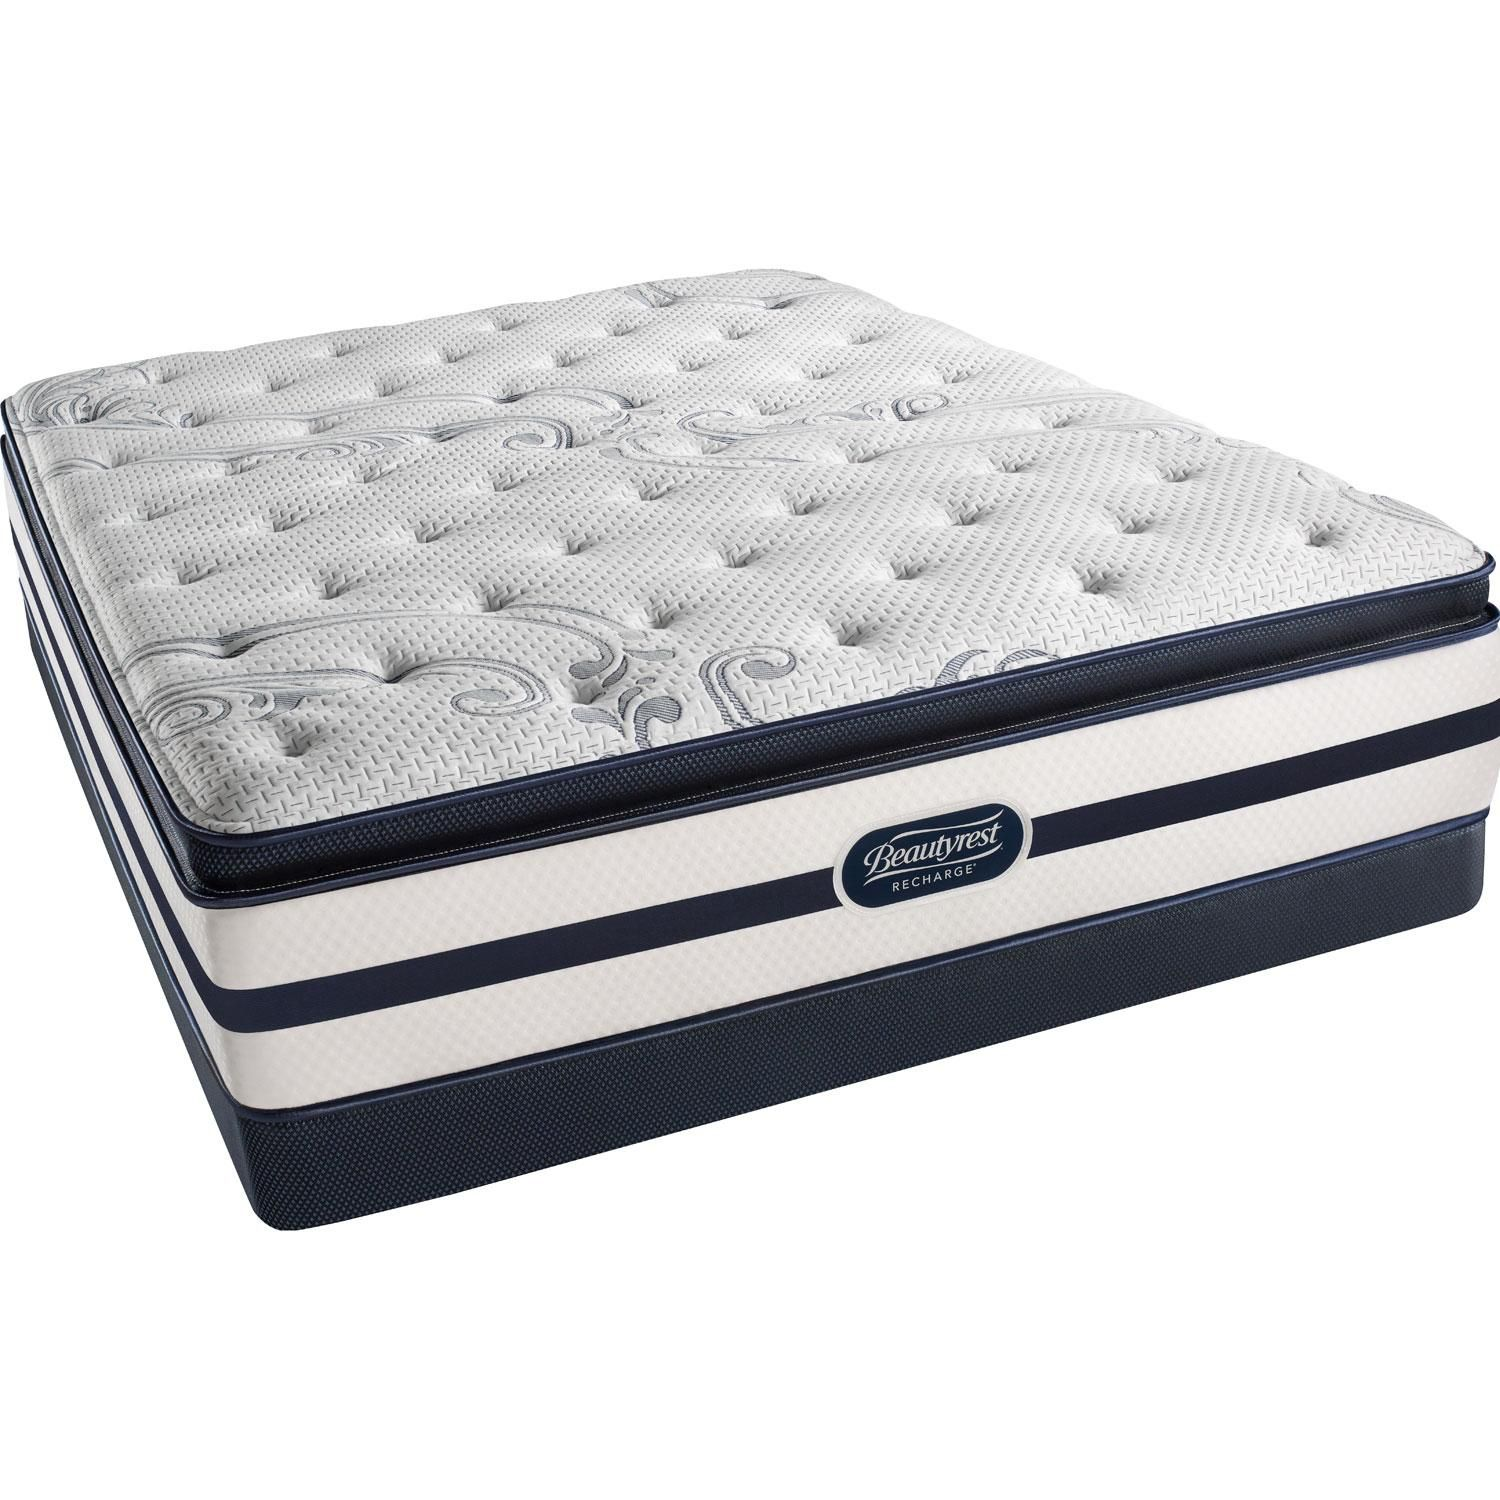 Beautyrest Recharge Bryanna Luxury Firm Pillow Top Low Profile Set